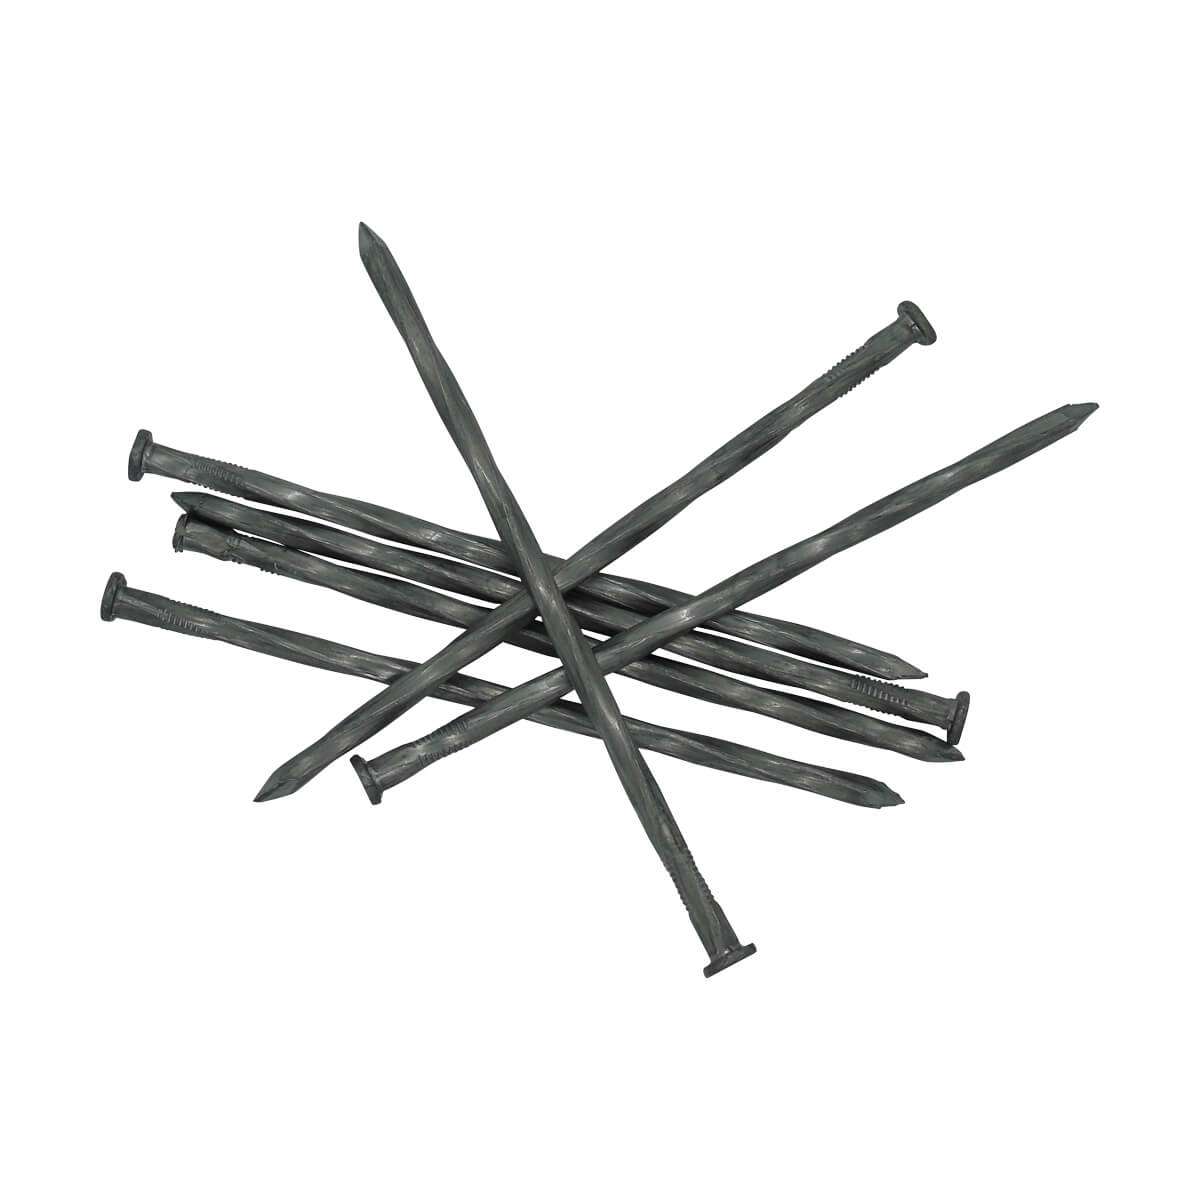 Ardox Spiral Nails - 7-in - Sold by the lb